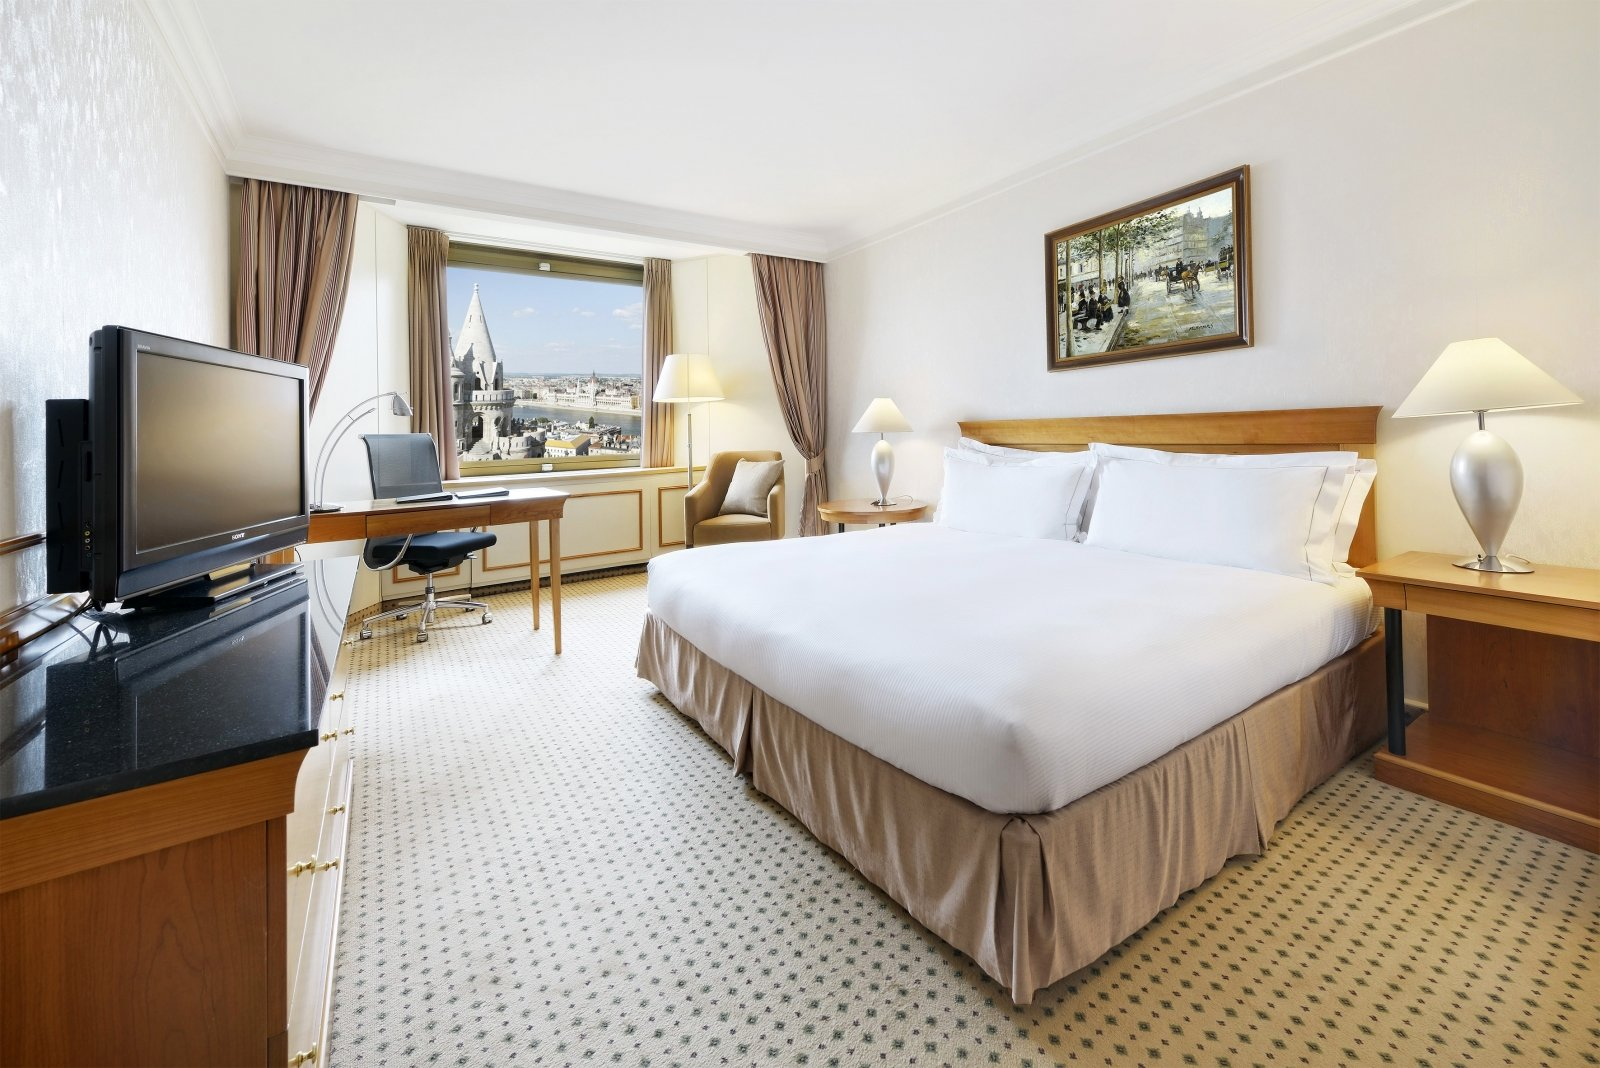 King Danube view room